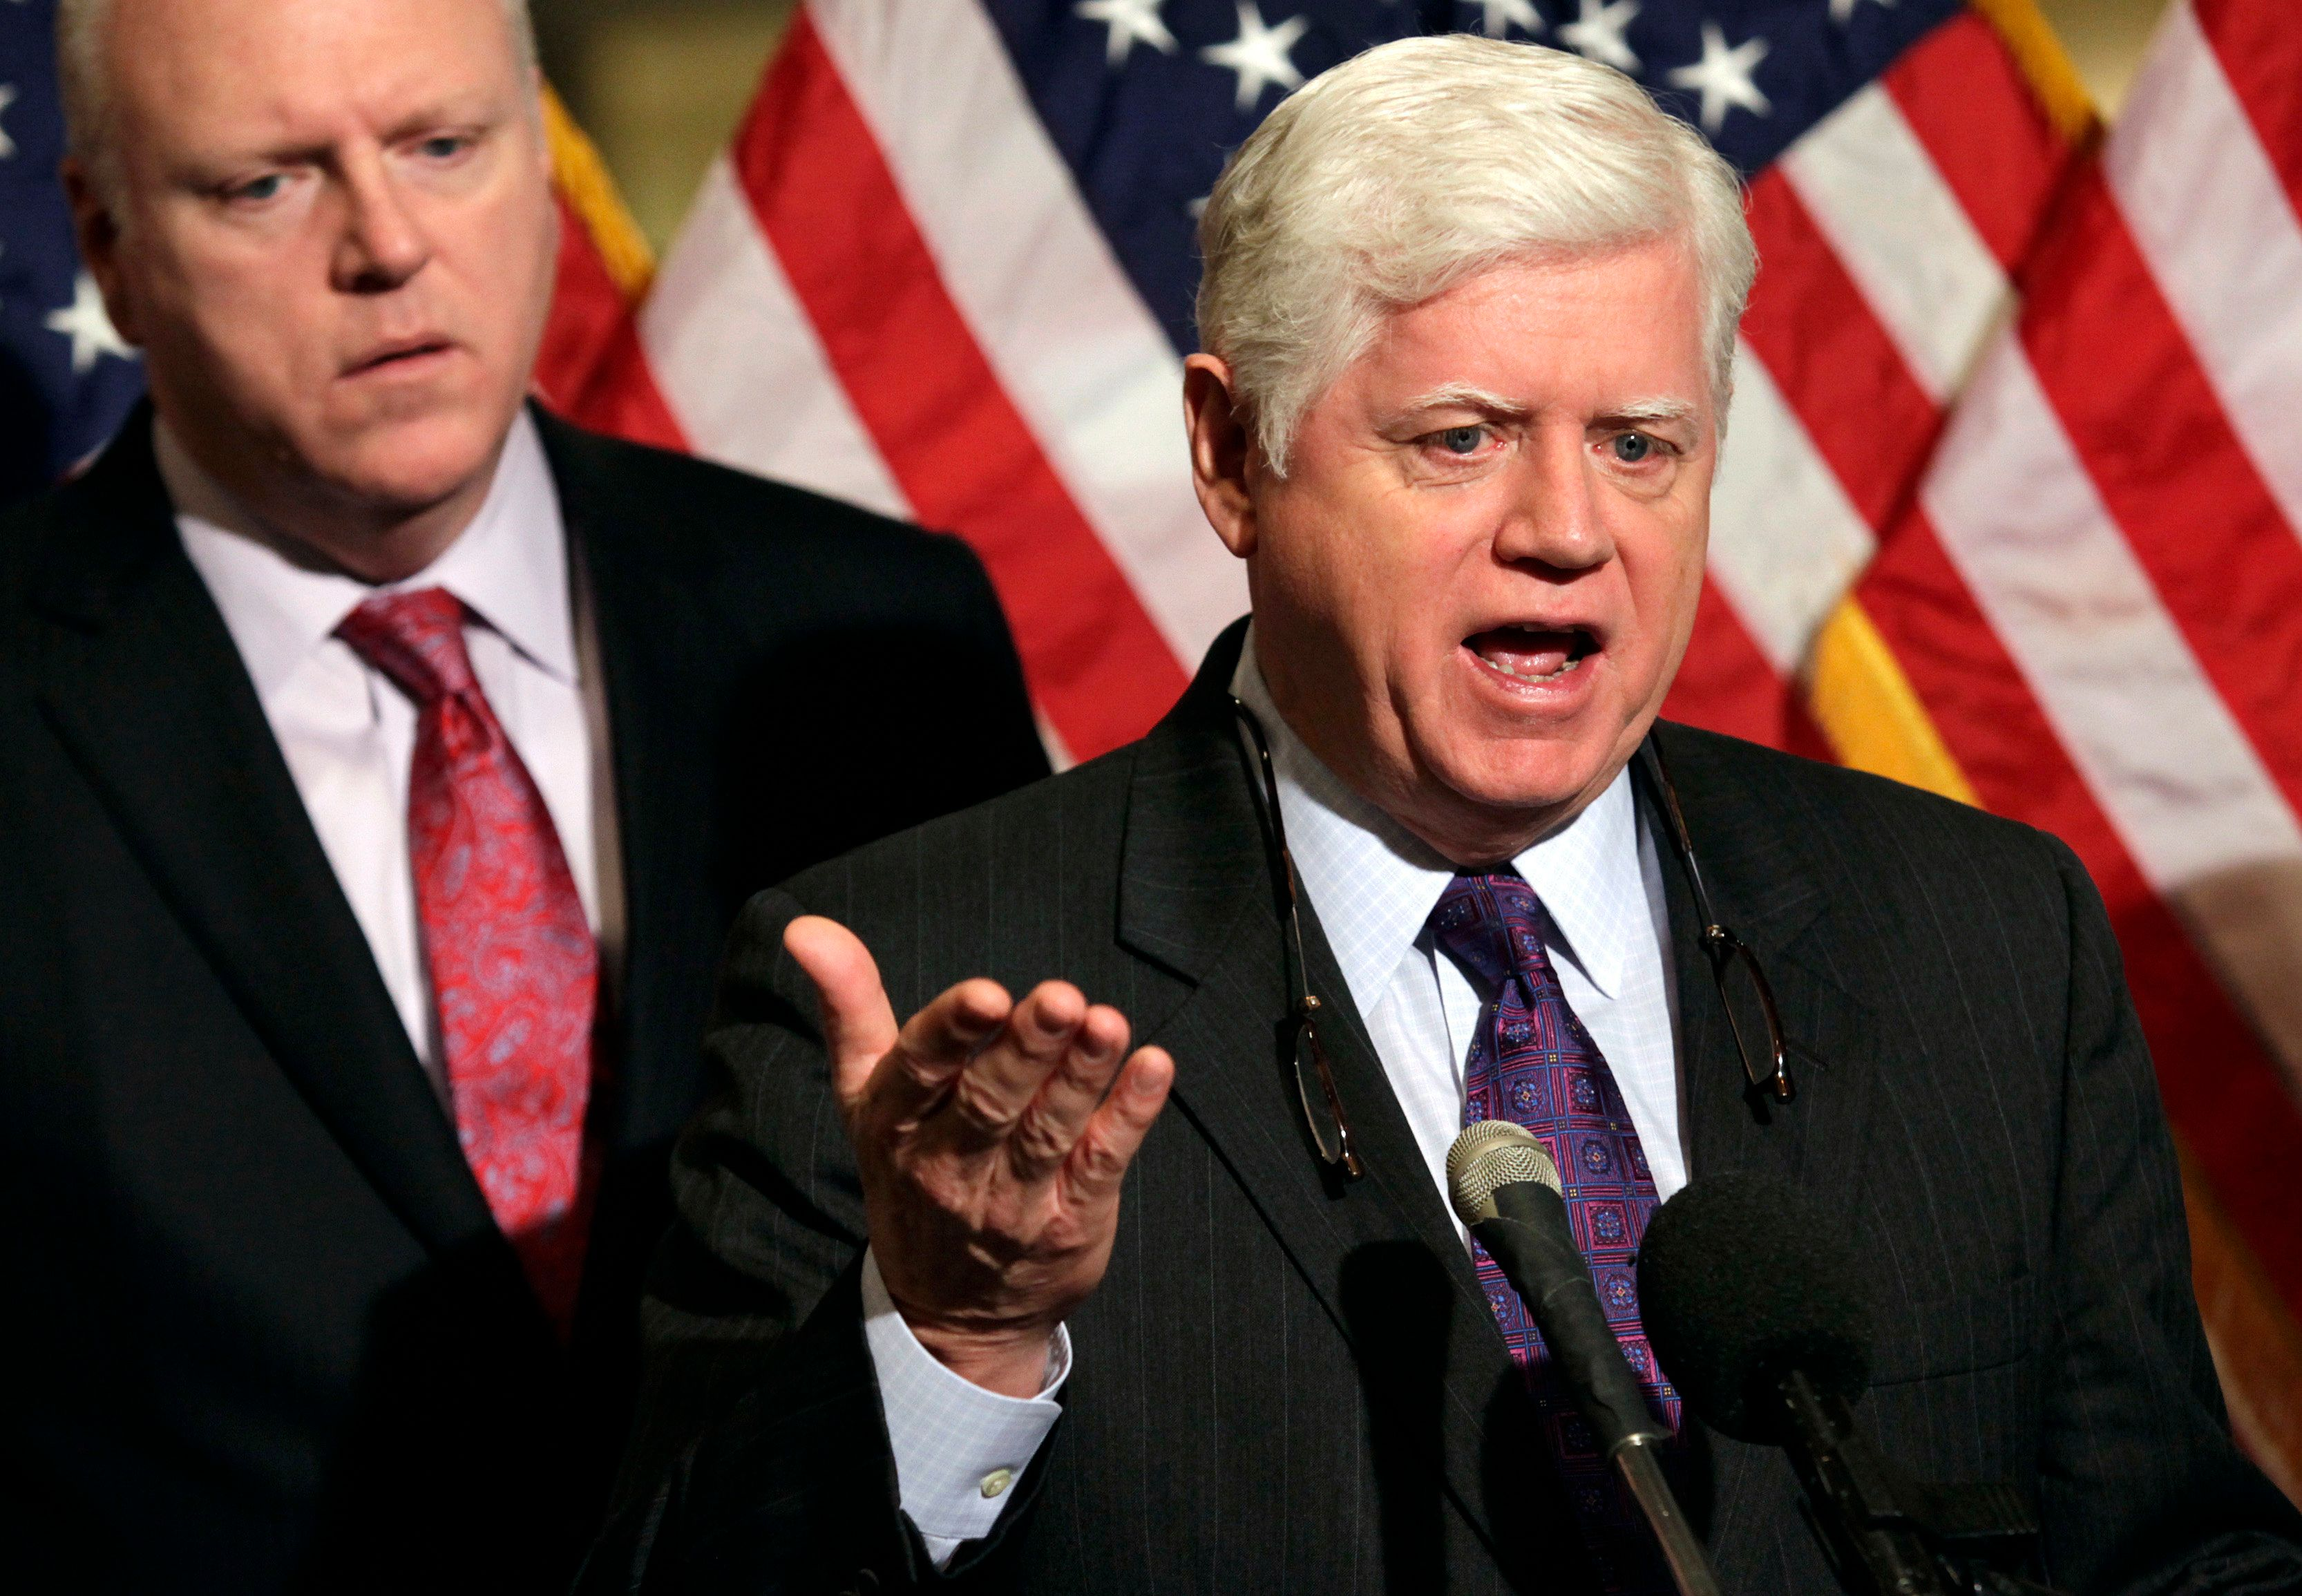 Rep. John Larson (D-Conn.), seen speaking to the media in 2012, introduced legislation to expand Social Security on Wedn